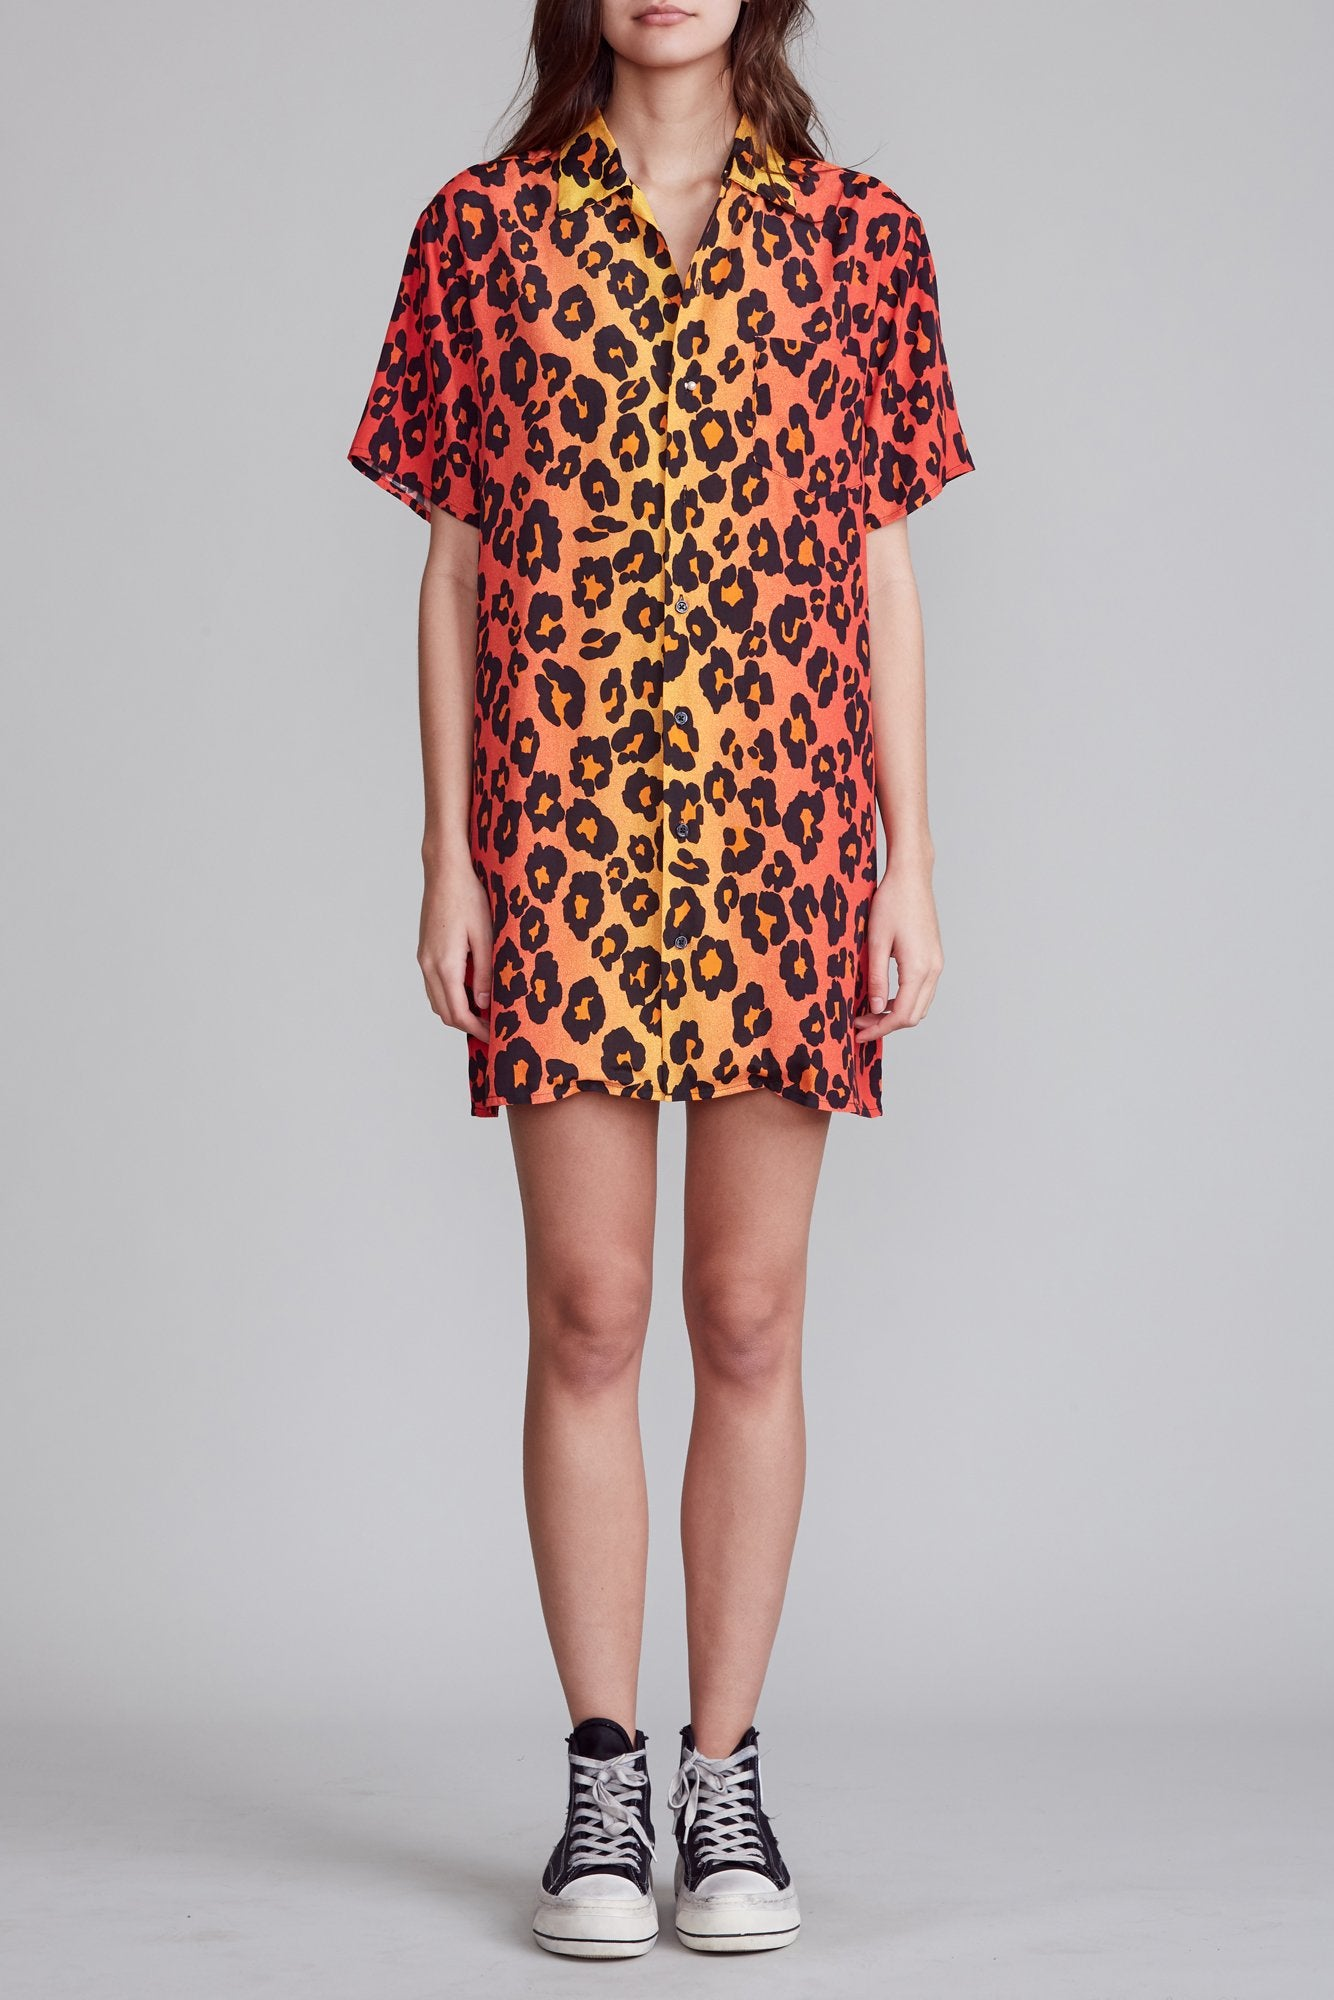 Skater Shirtdress - Ombre Leopard